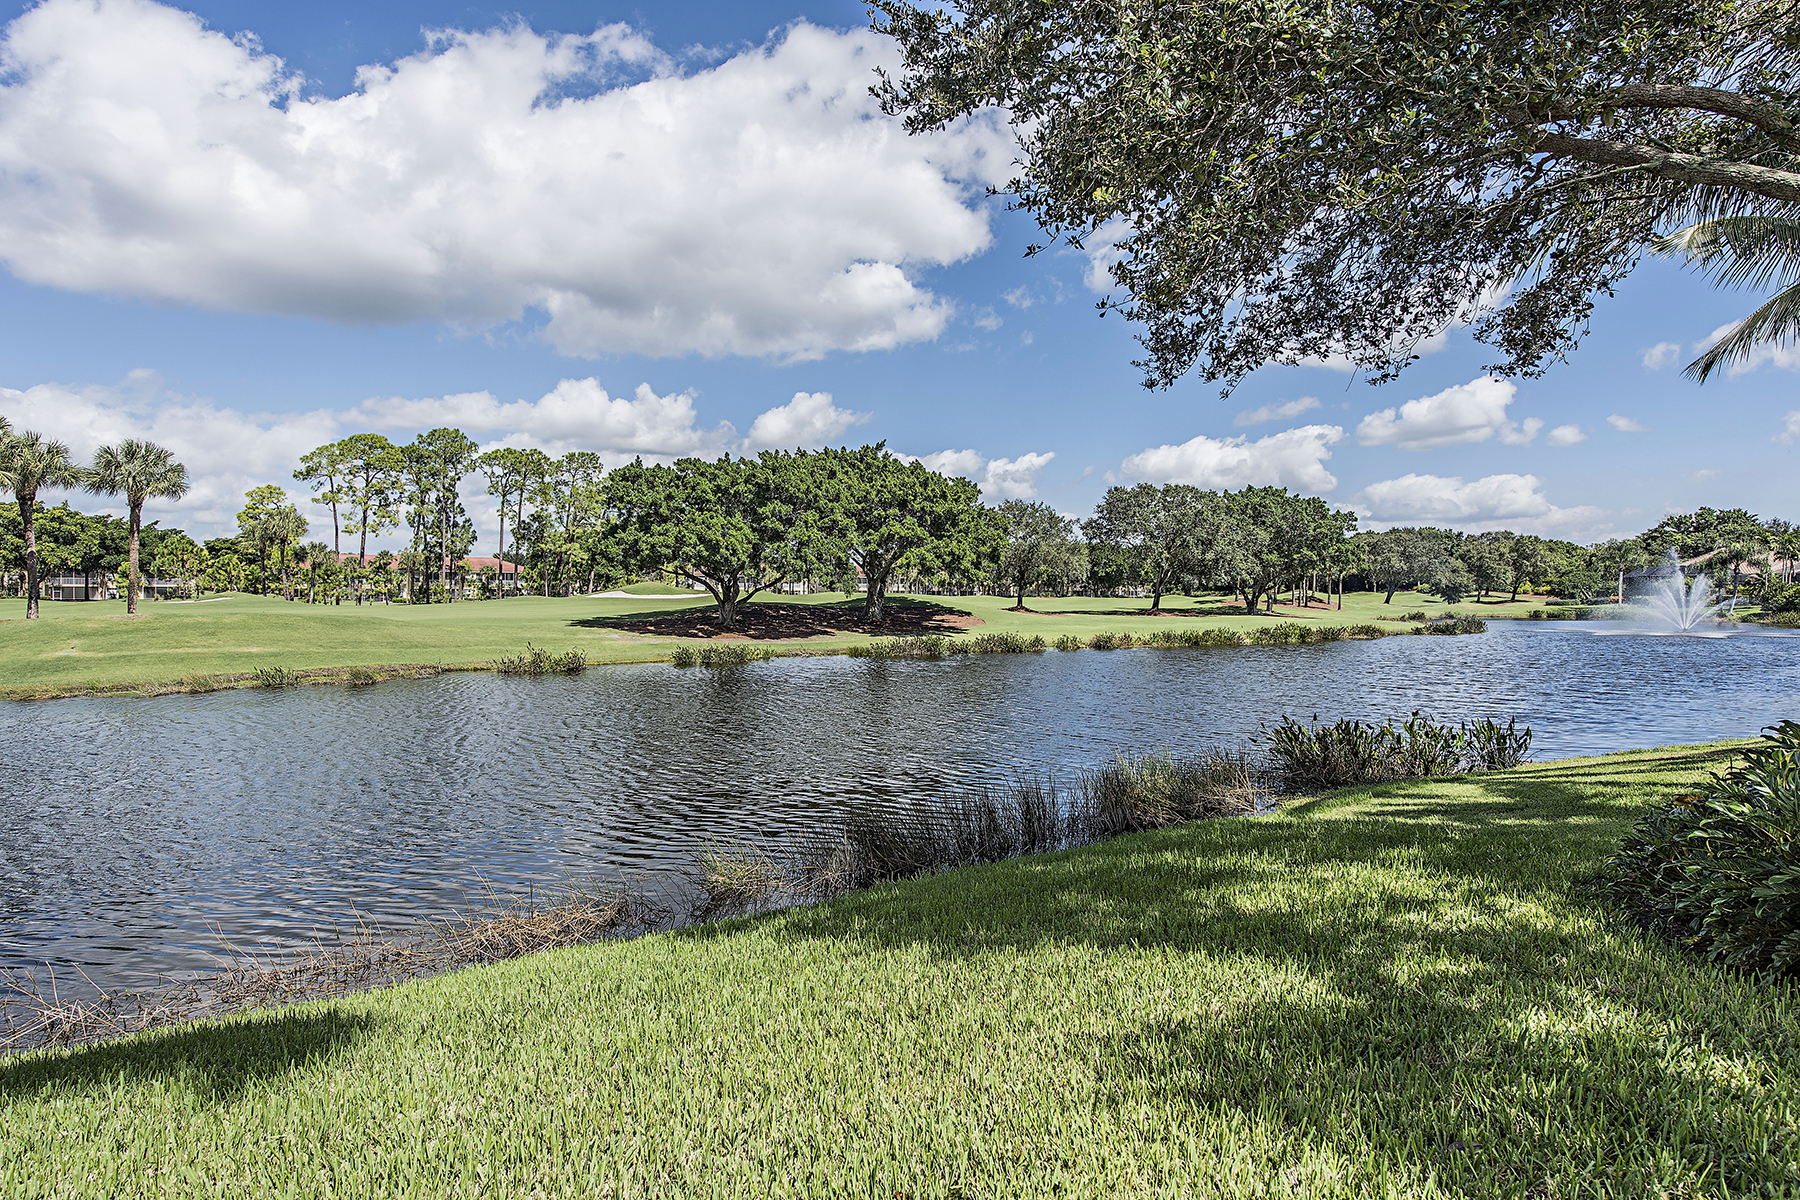 Single Family Home for Sale at PELICAN MARSH - WATERCREST 2337 Cheshire Ln, Naples, Florida 34109 United States